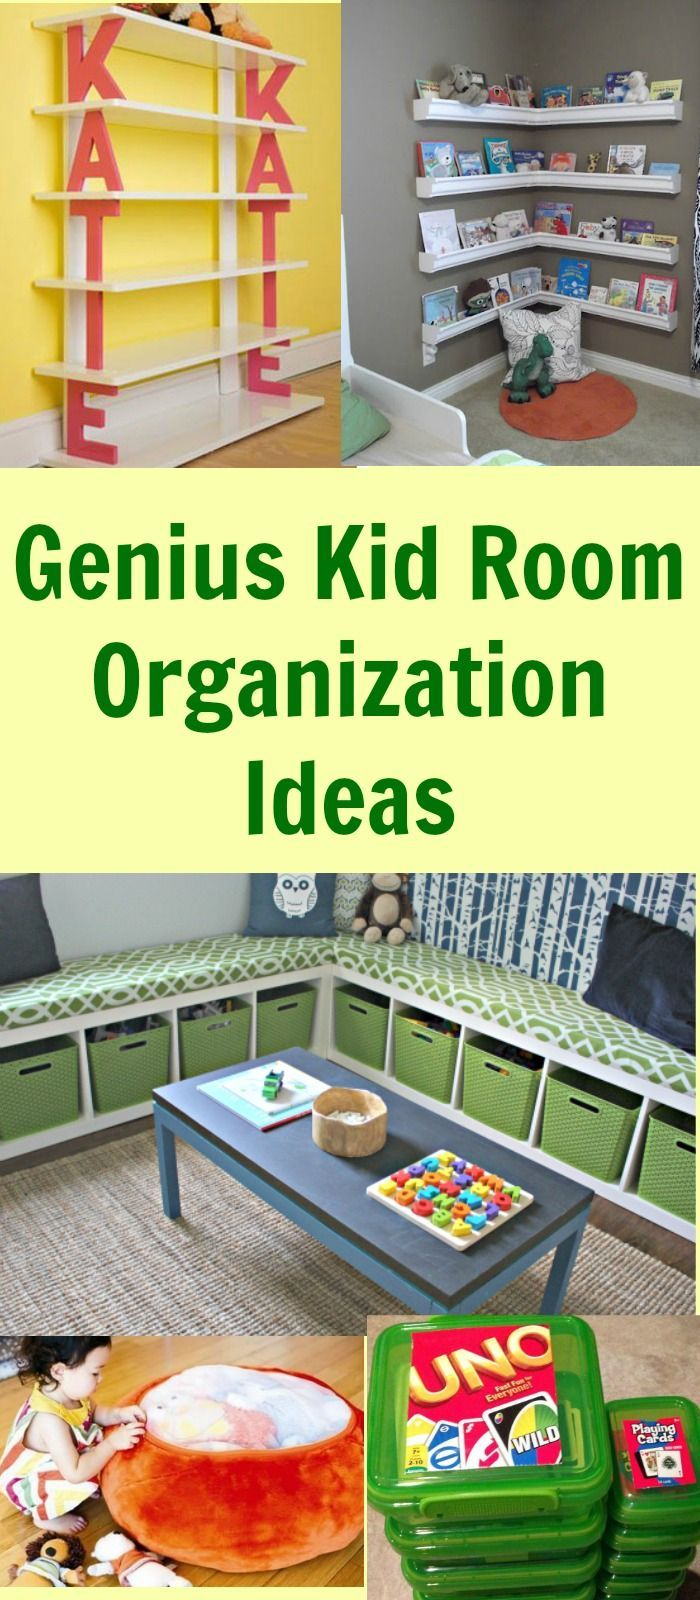 Use These Kid Room Organization Ideas To Get Your Childu0027s Room Organized  Once And For All. #organization #kidroom #homedecor | Pinterest |  Organisation ...